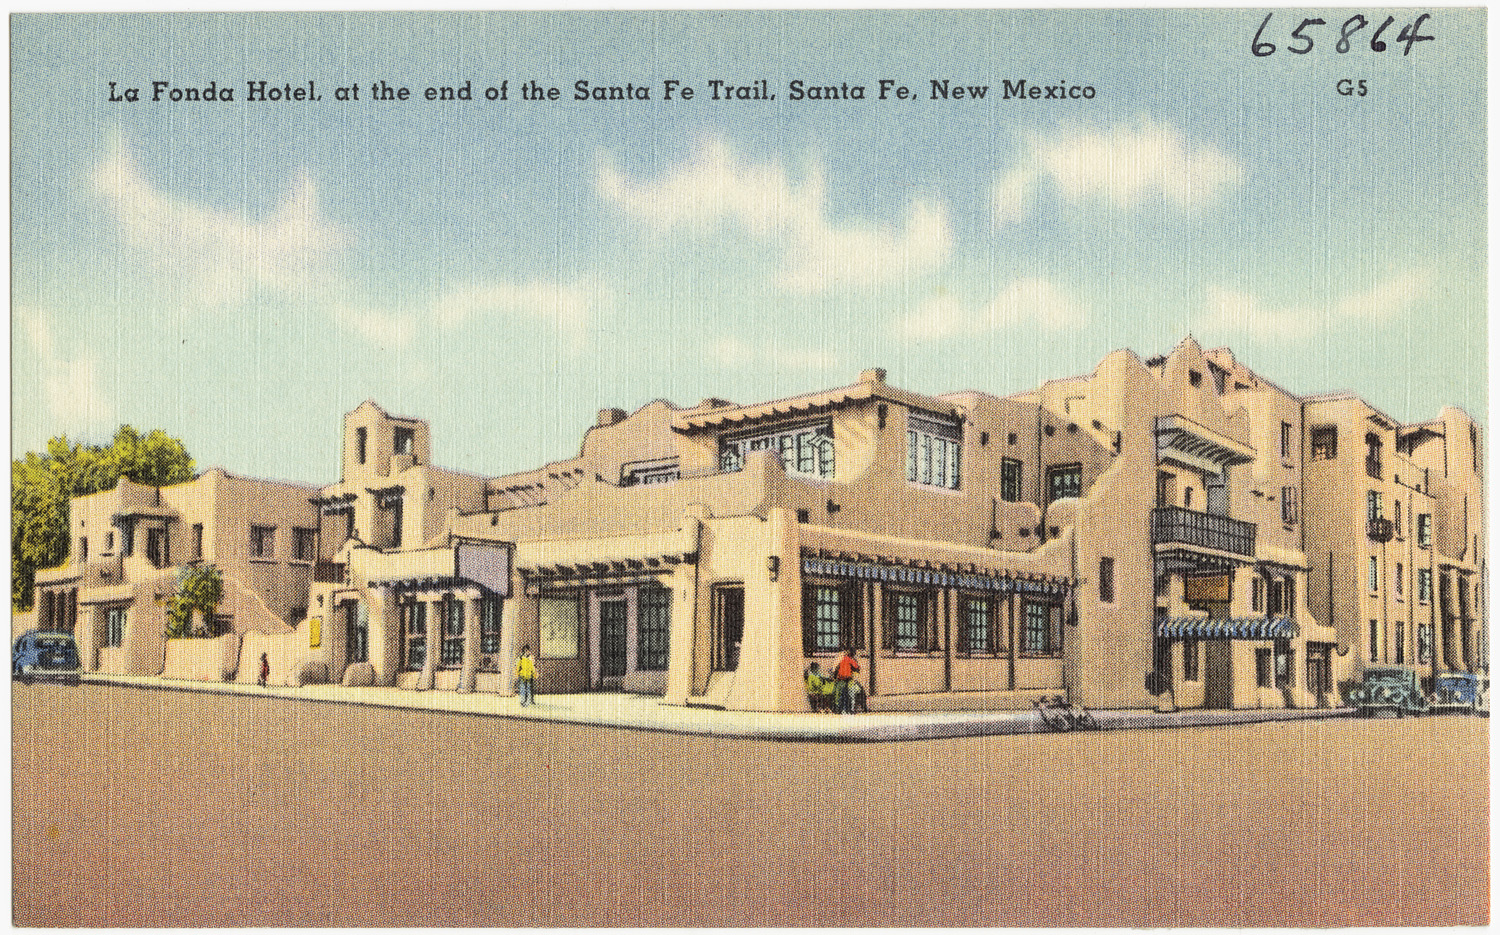 File:La Fonda Hotel, at the end of the Santa Fe trail